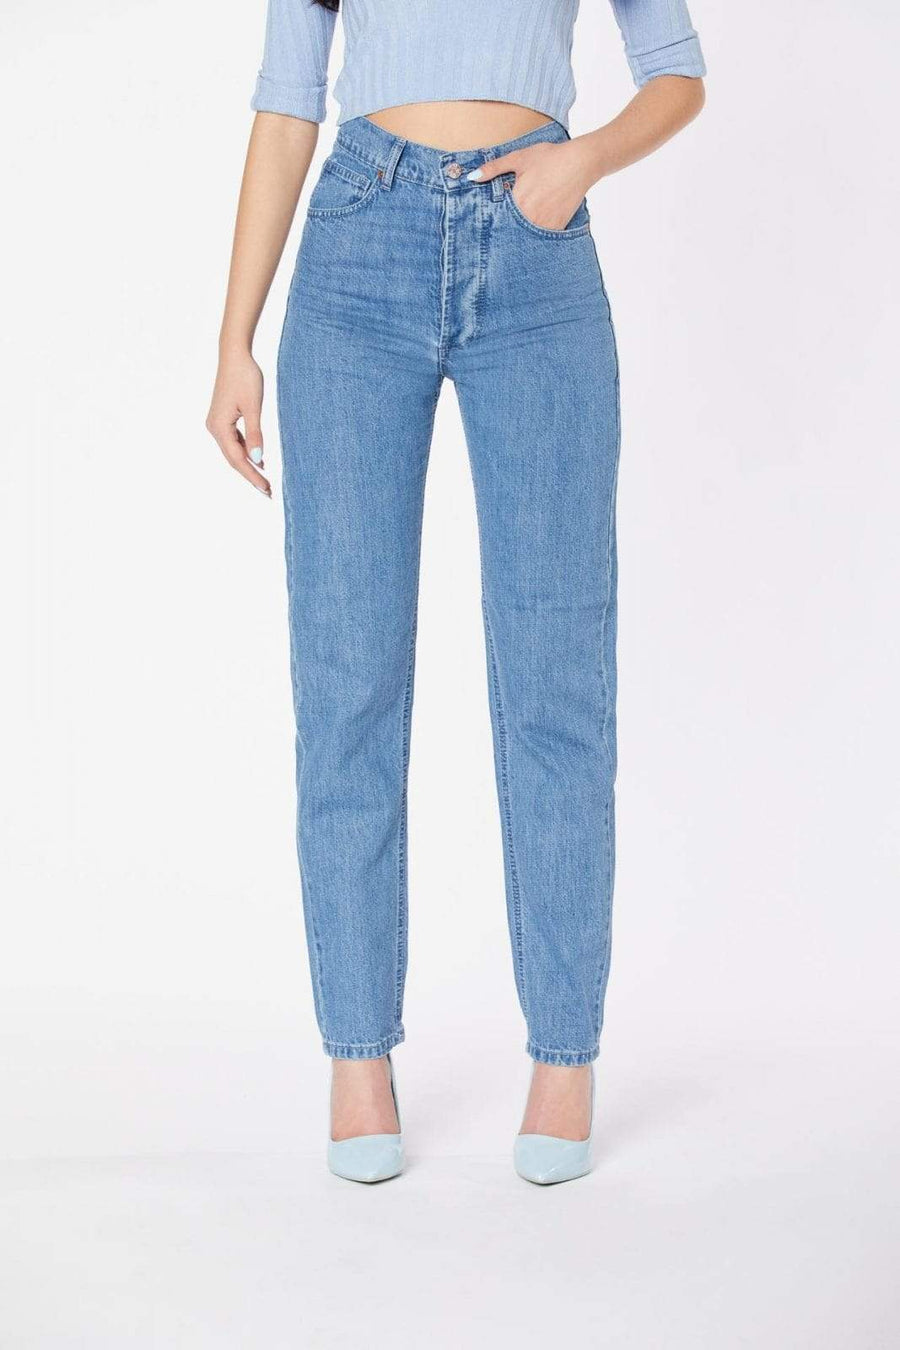 Par.co Fashion SRL pants Peonia Work Jeans in Organic Cotton. sustainable fashion ethical fashion